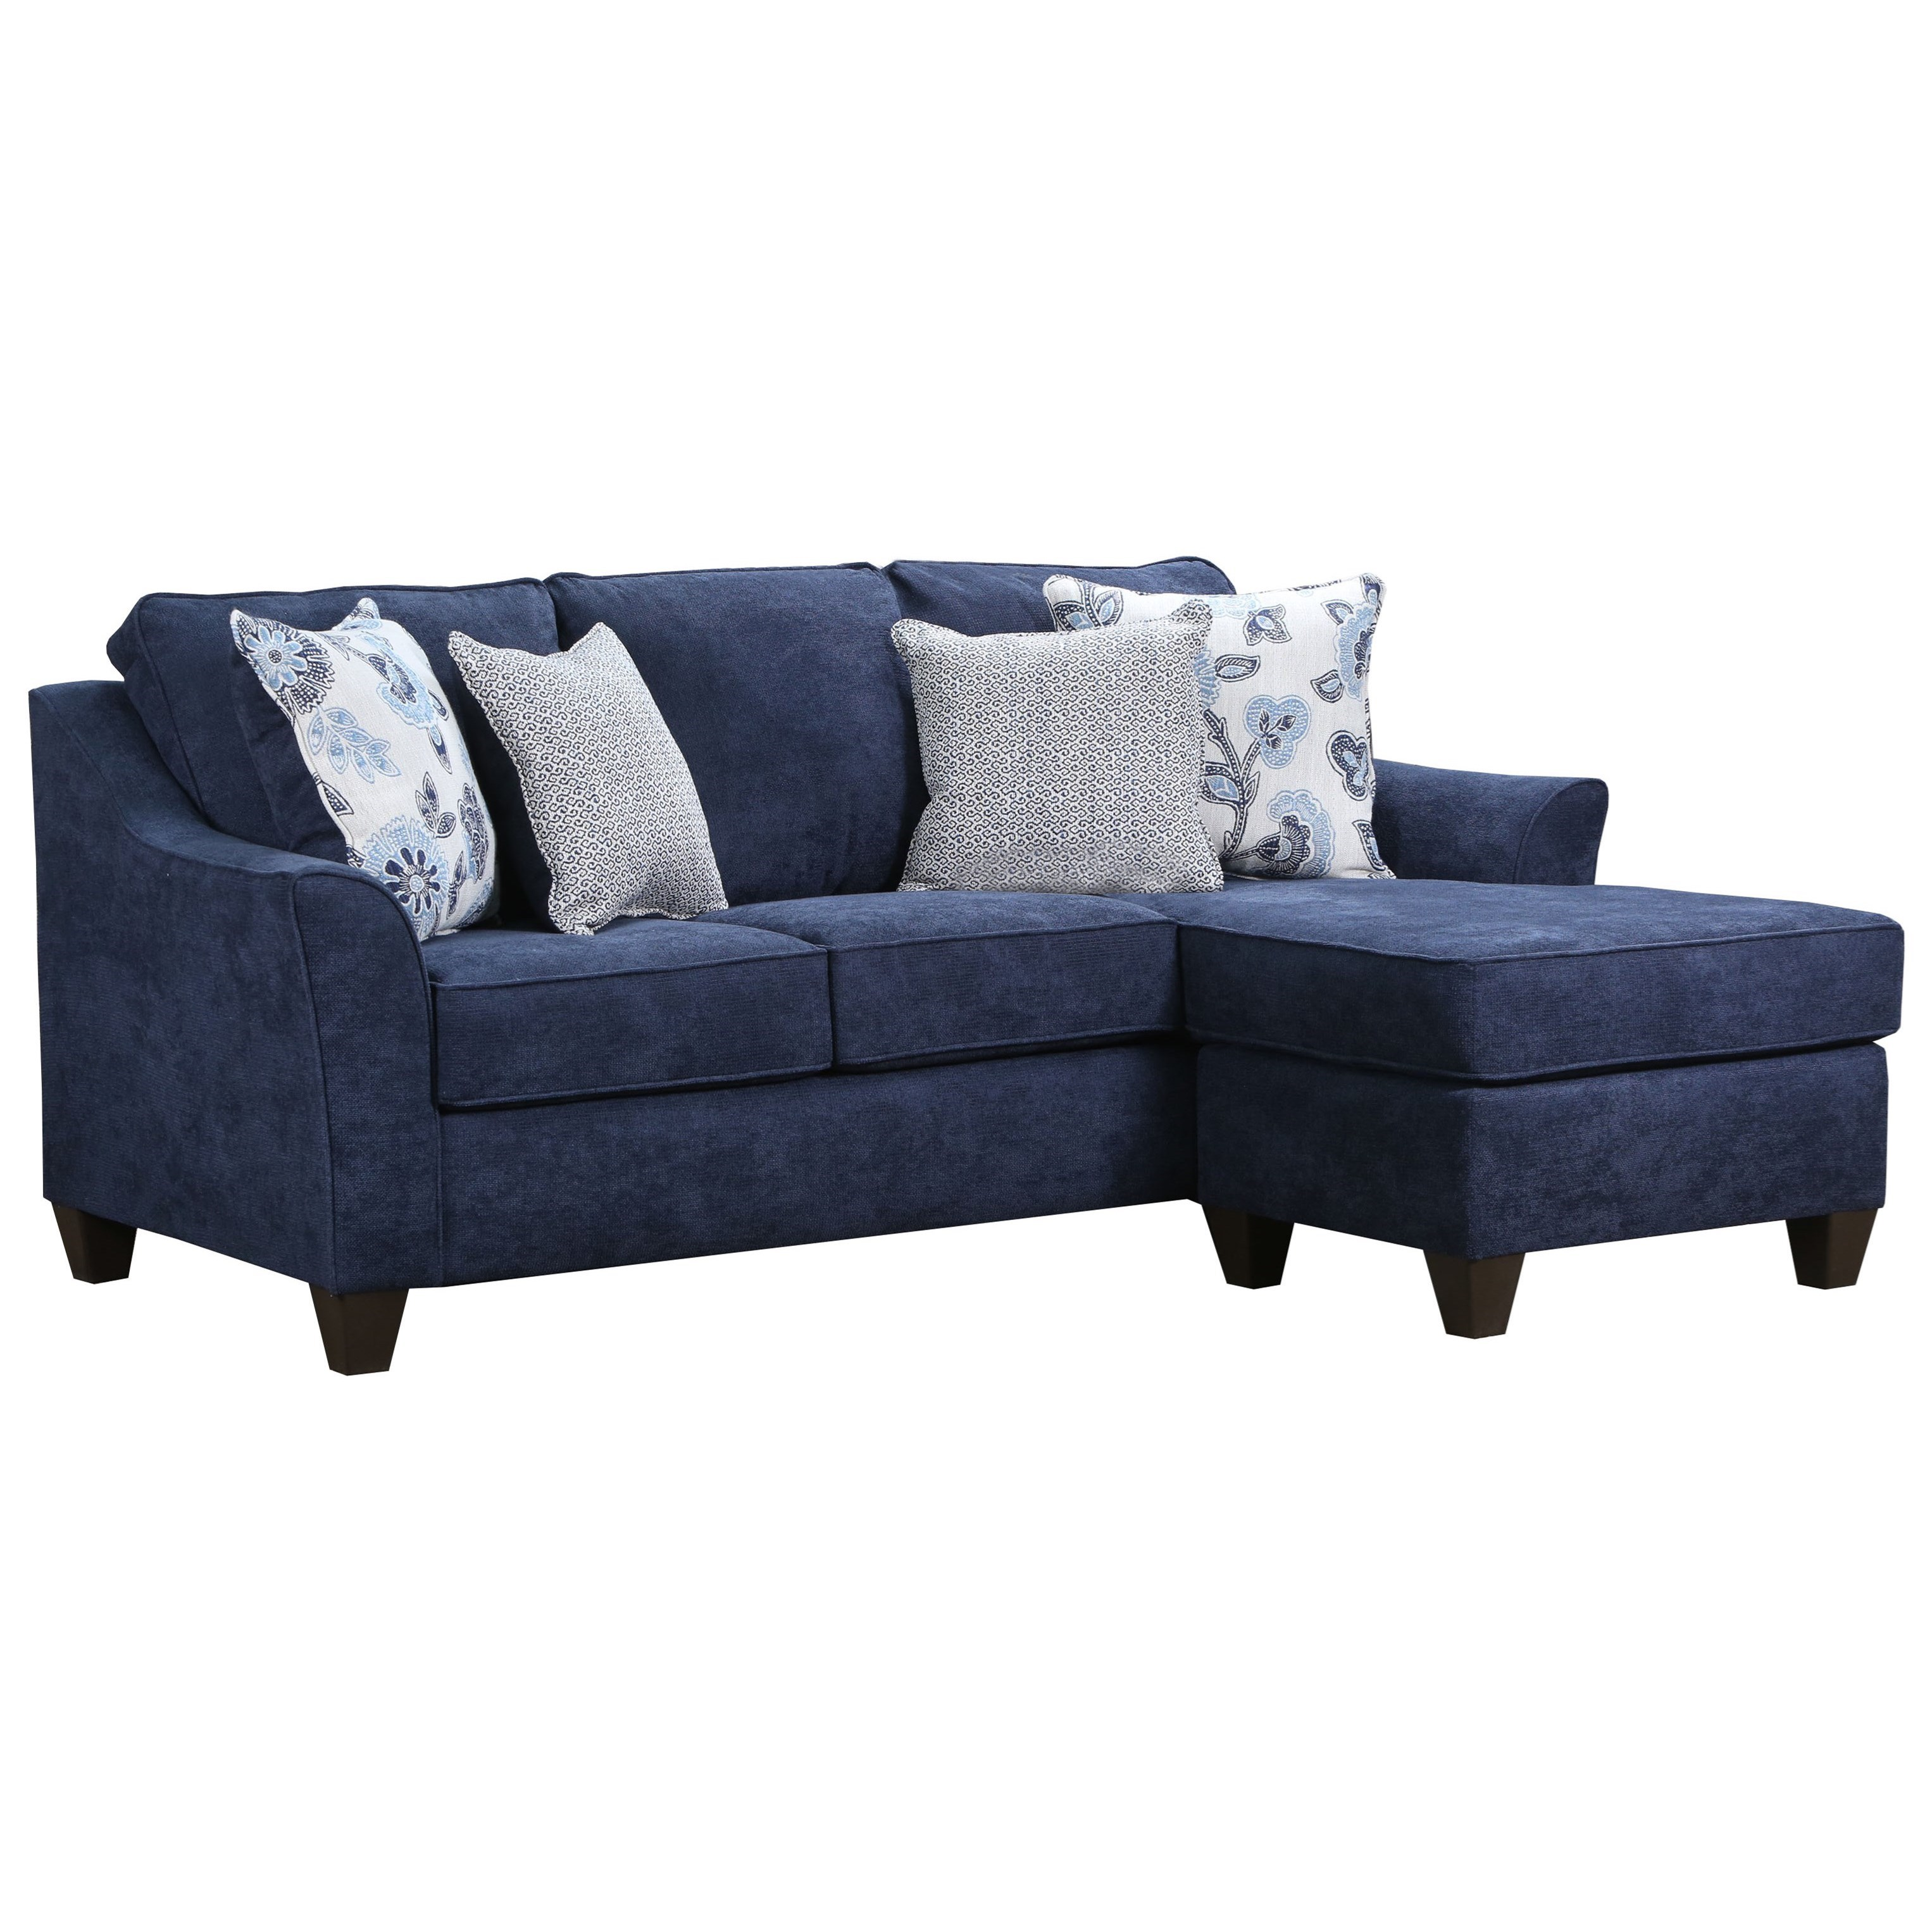 4330 Contemporary Sofa with Reversible Chaise by United Furniture  Industries at Pilgrim Furniture City